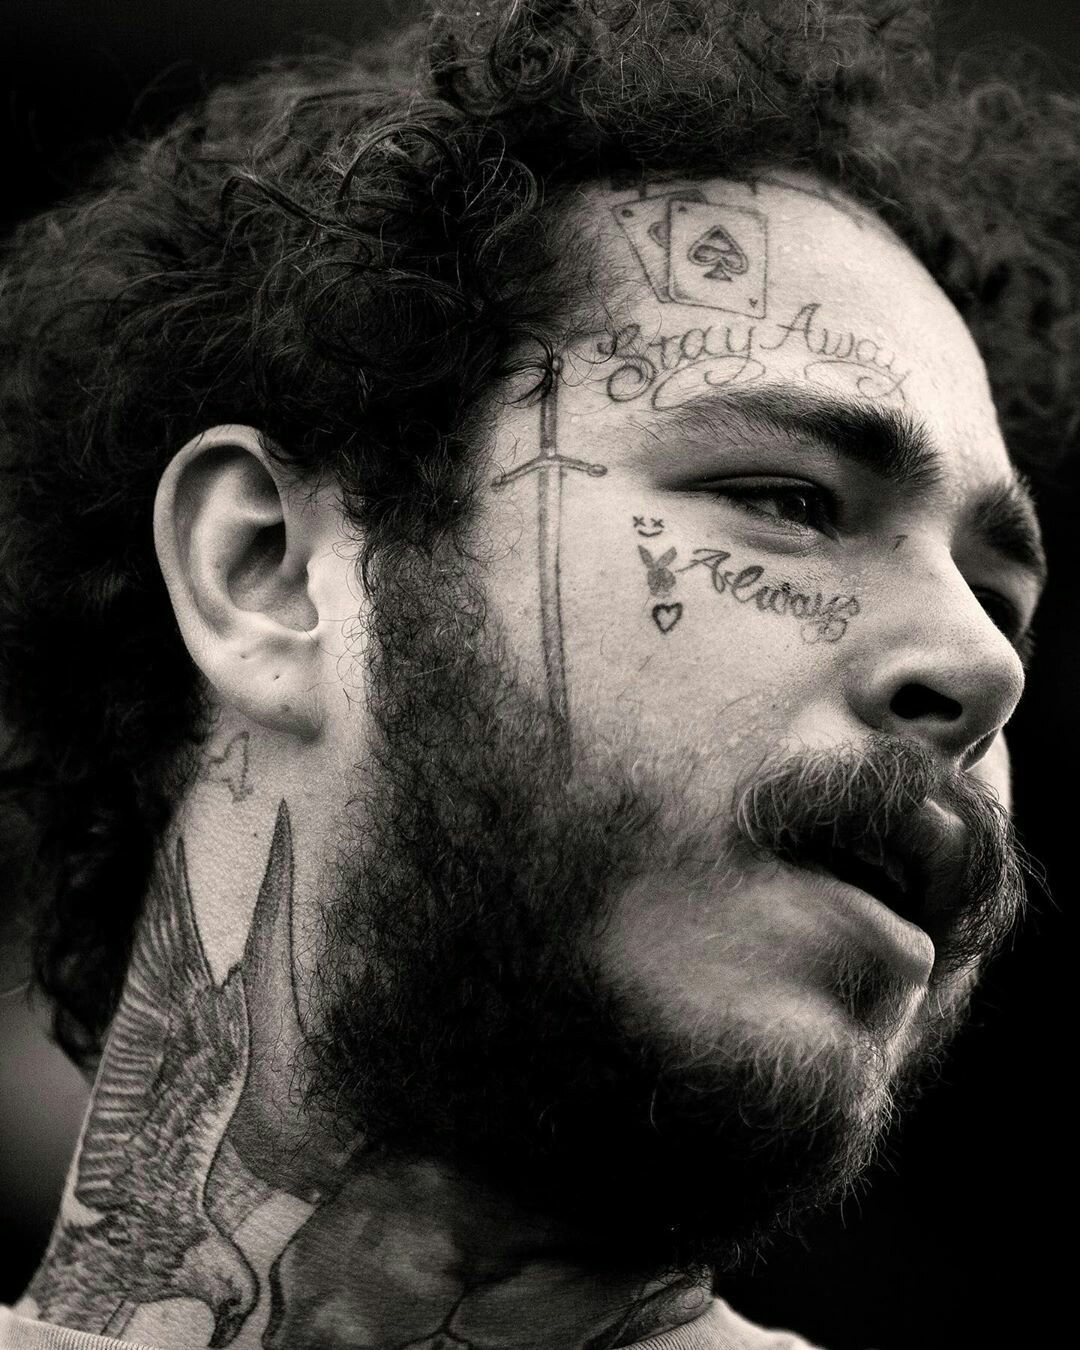 Post Malone Aesthetic: Pin By עדן טזזו On Post Malone In 2020